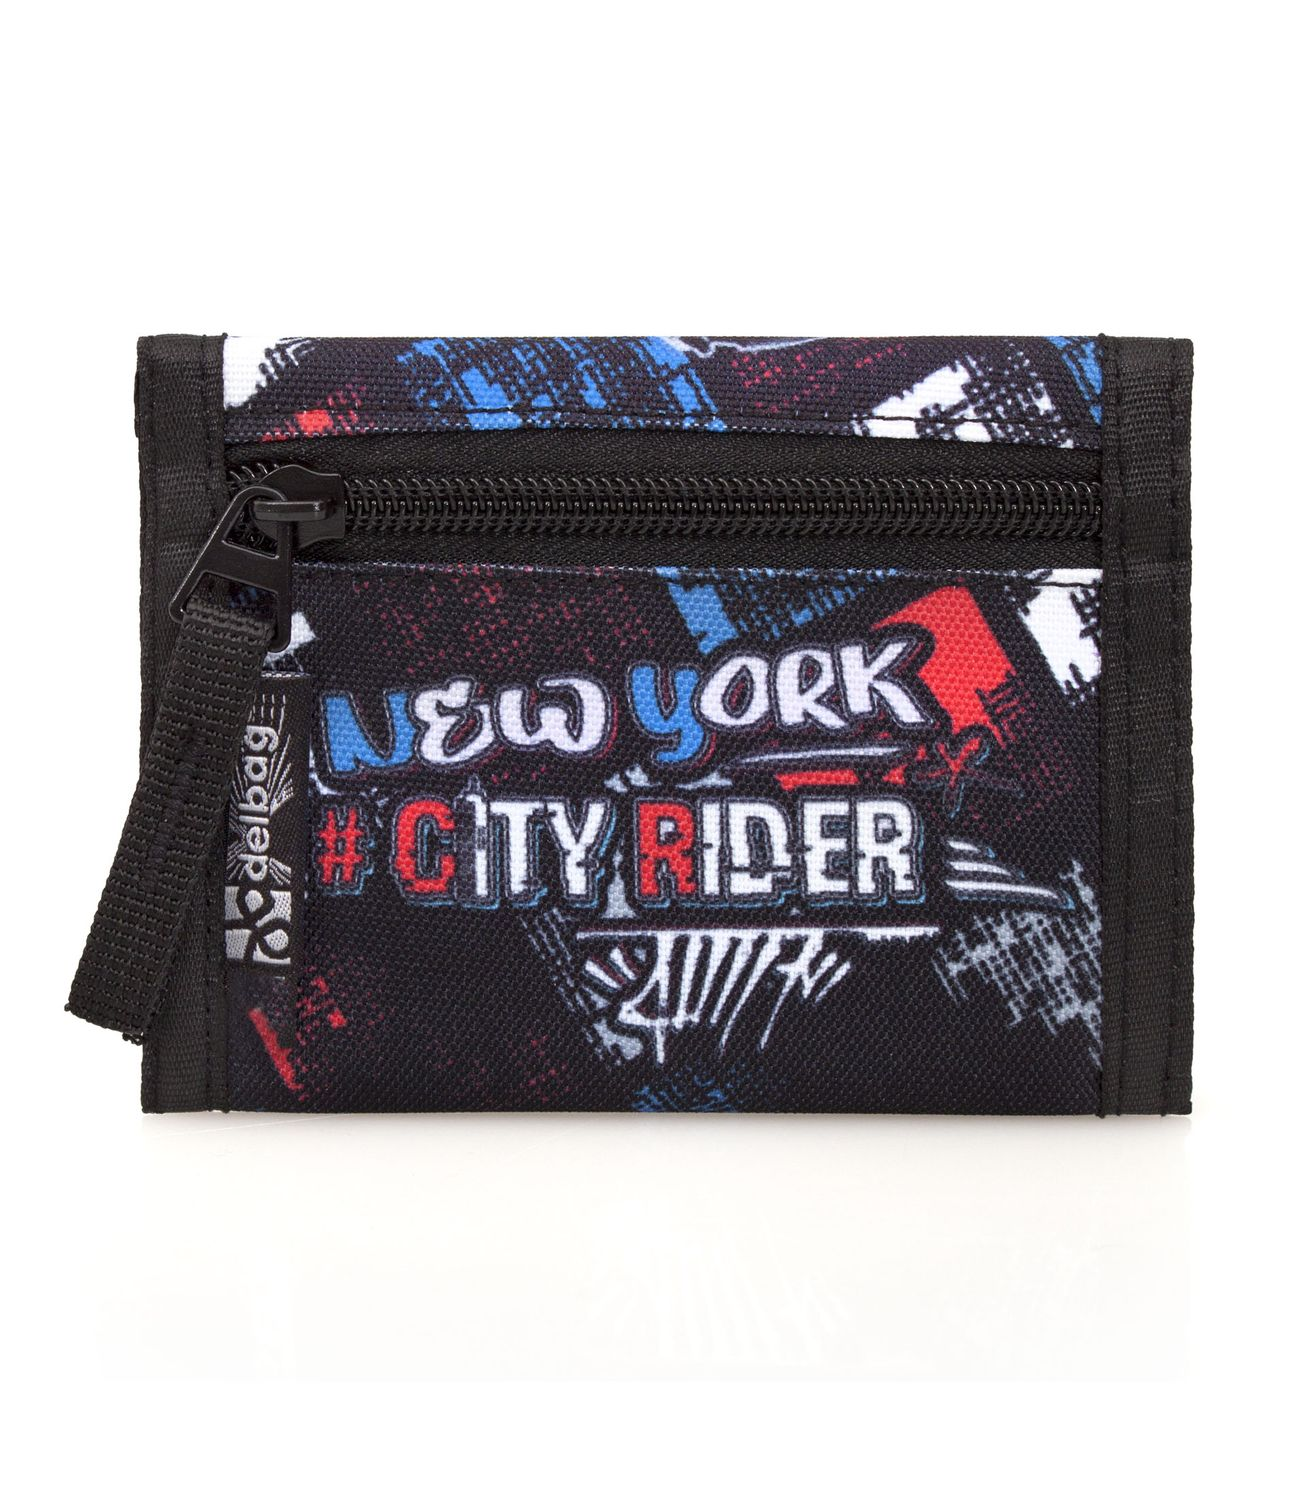 Delbag BIKE CITY RIDER Wallet – image 2